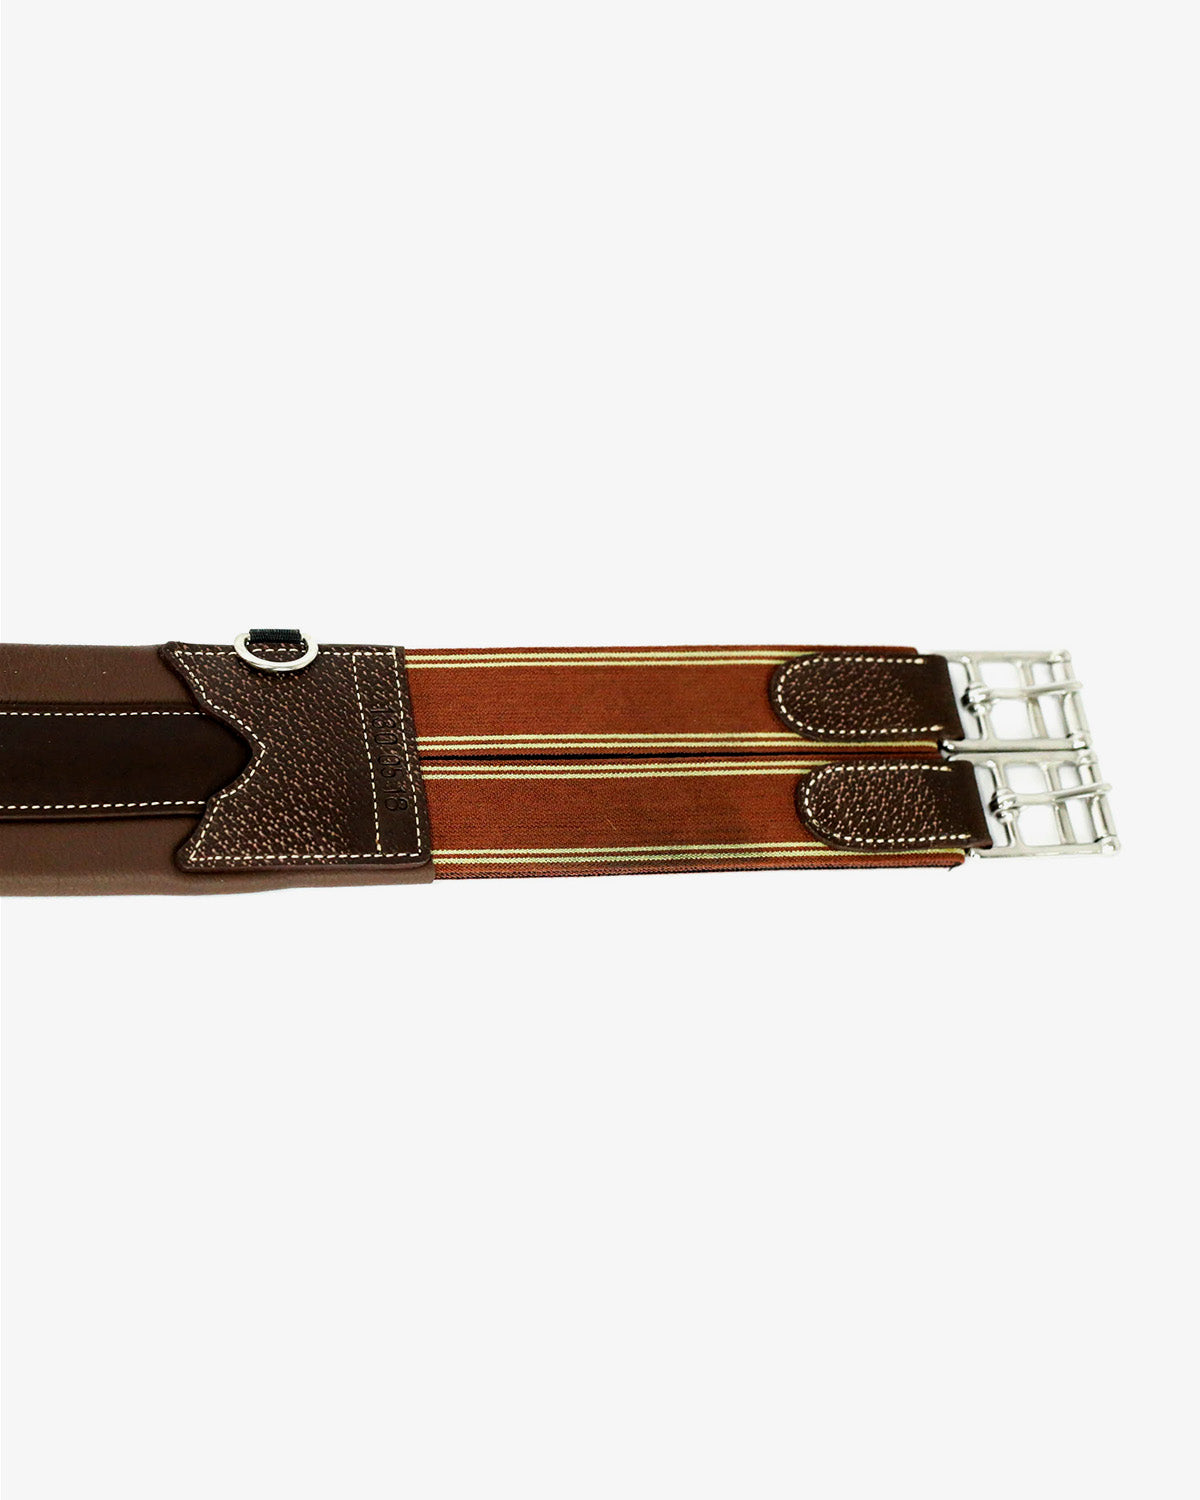 A7 Leather Stud Girth